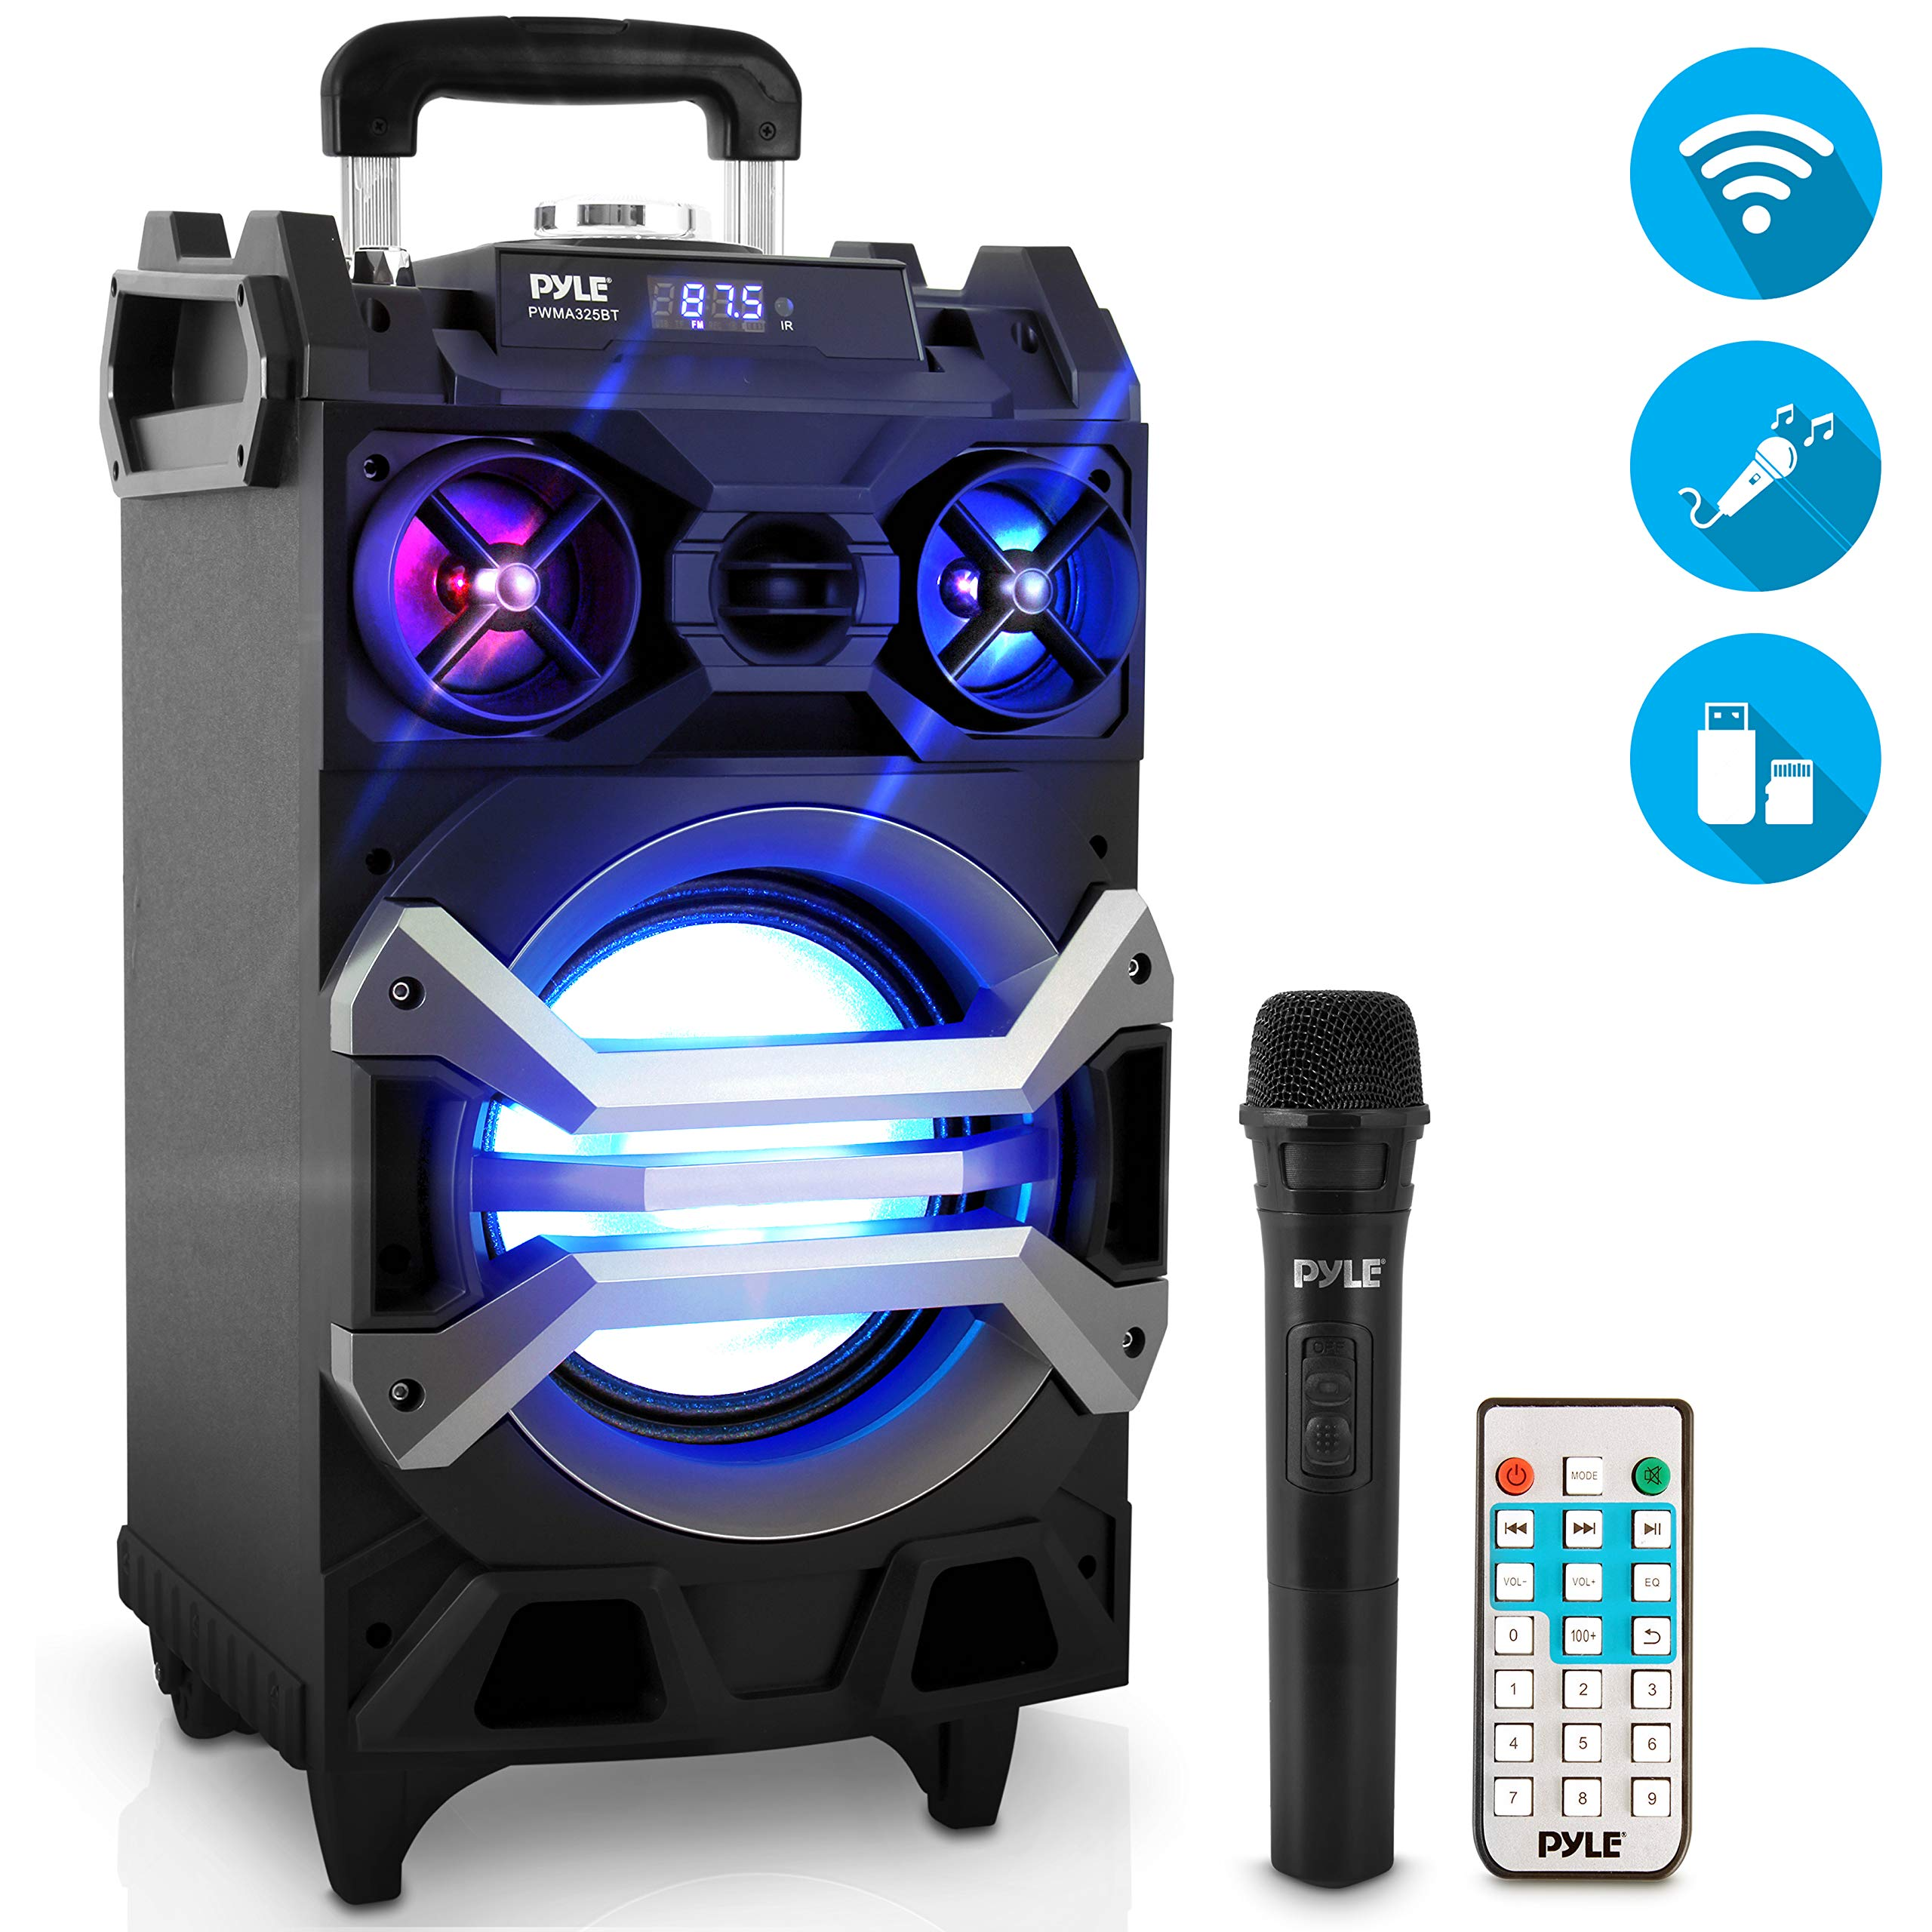 Pyle 500 Watt Outdoor Portable BT Connectivity Karaoke Speaker System - PA Stereo with 8'' Subwoofer, DJ Lights Rechargeable Battery Microphone, Recording Ability, MP3/USB/SD/FM Radio - PWMA325BT